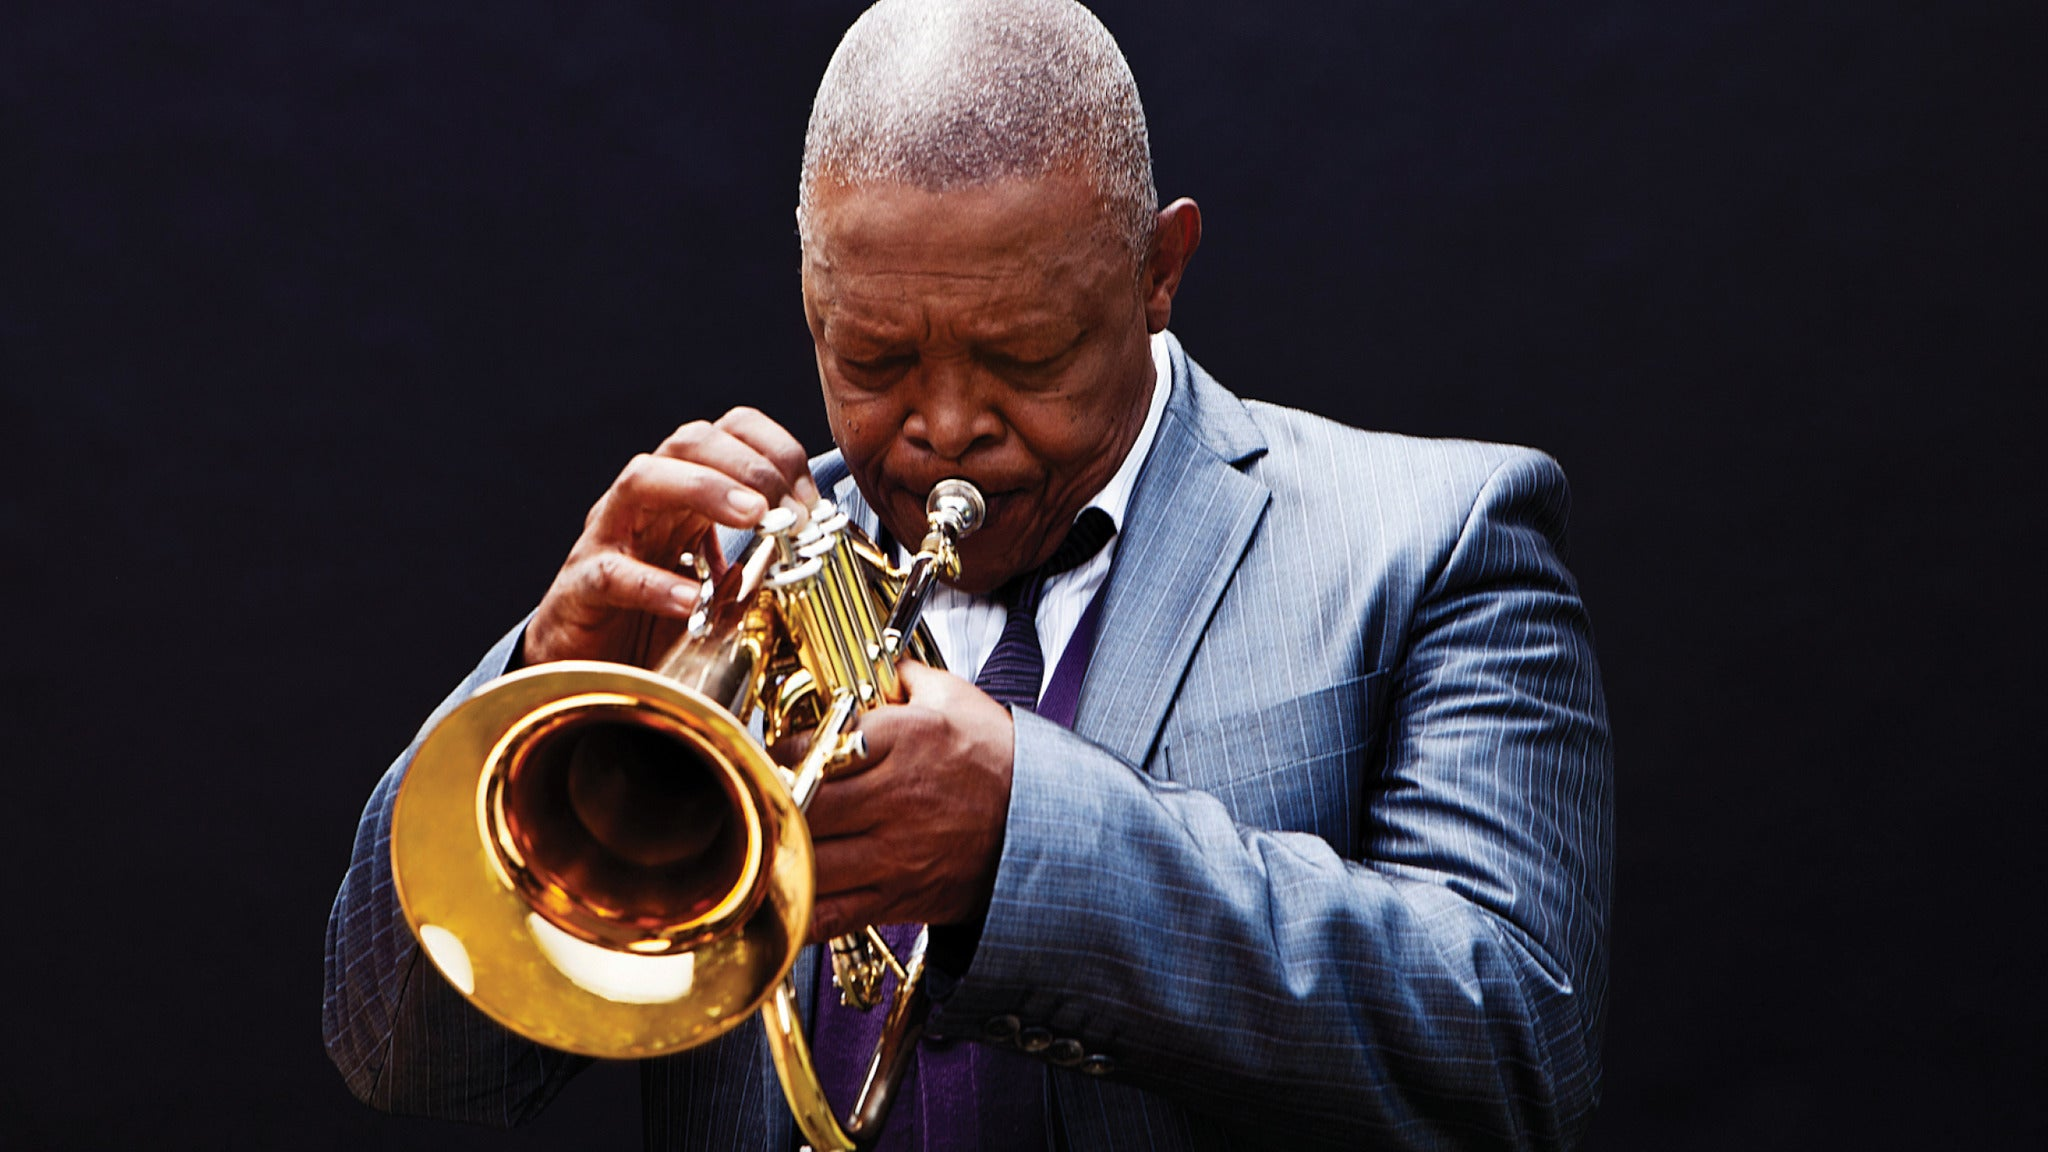 The Jazz Epistles featuring Abdullah Ibrahim and Ekaya